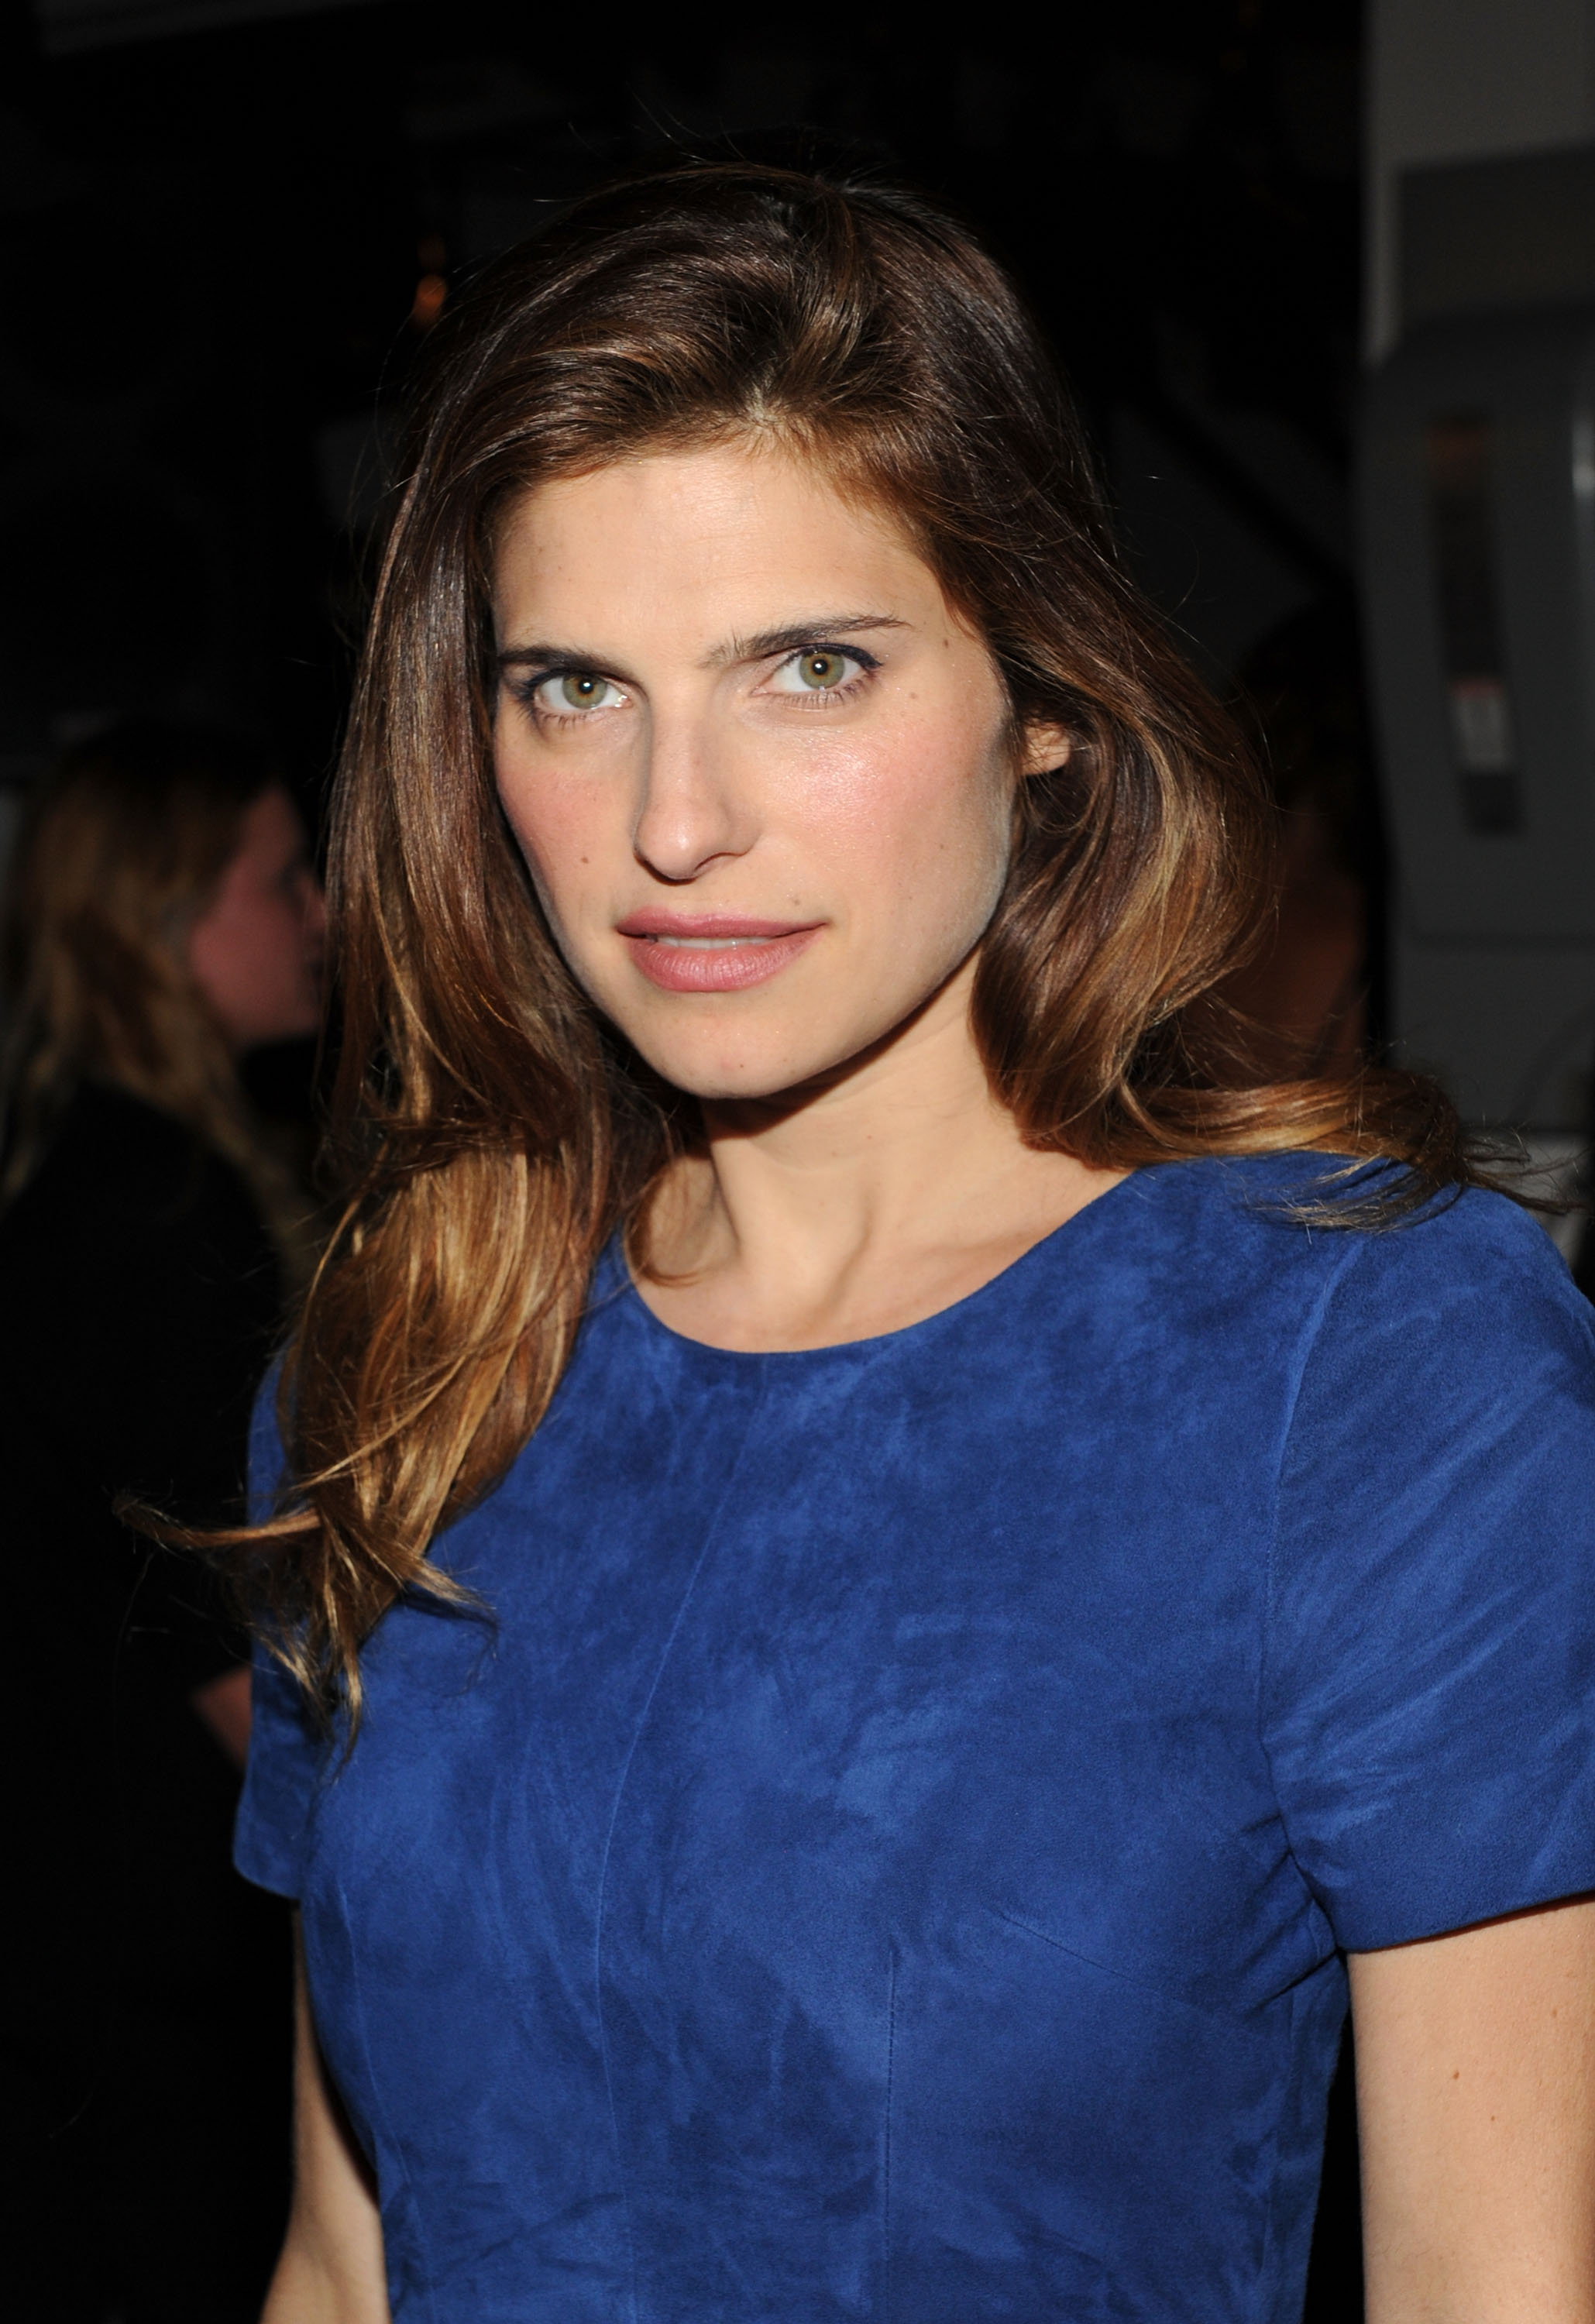 Watch Lake bell leaked 7 Photos video